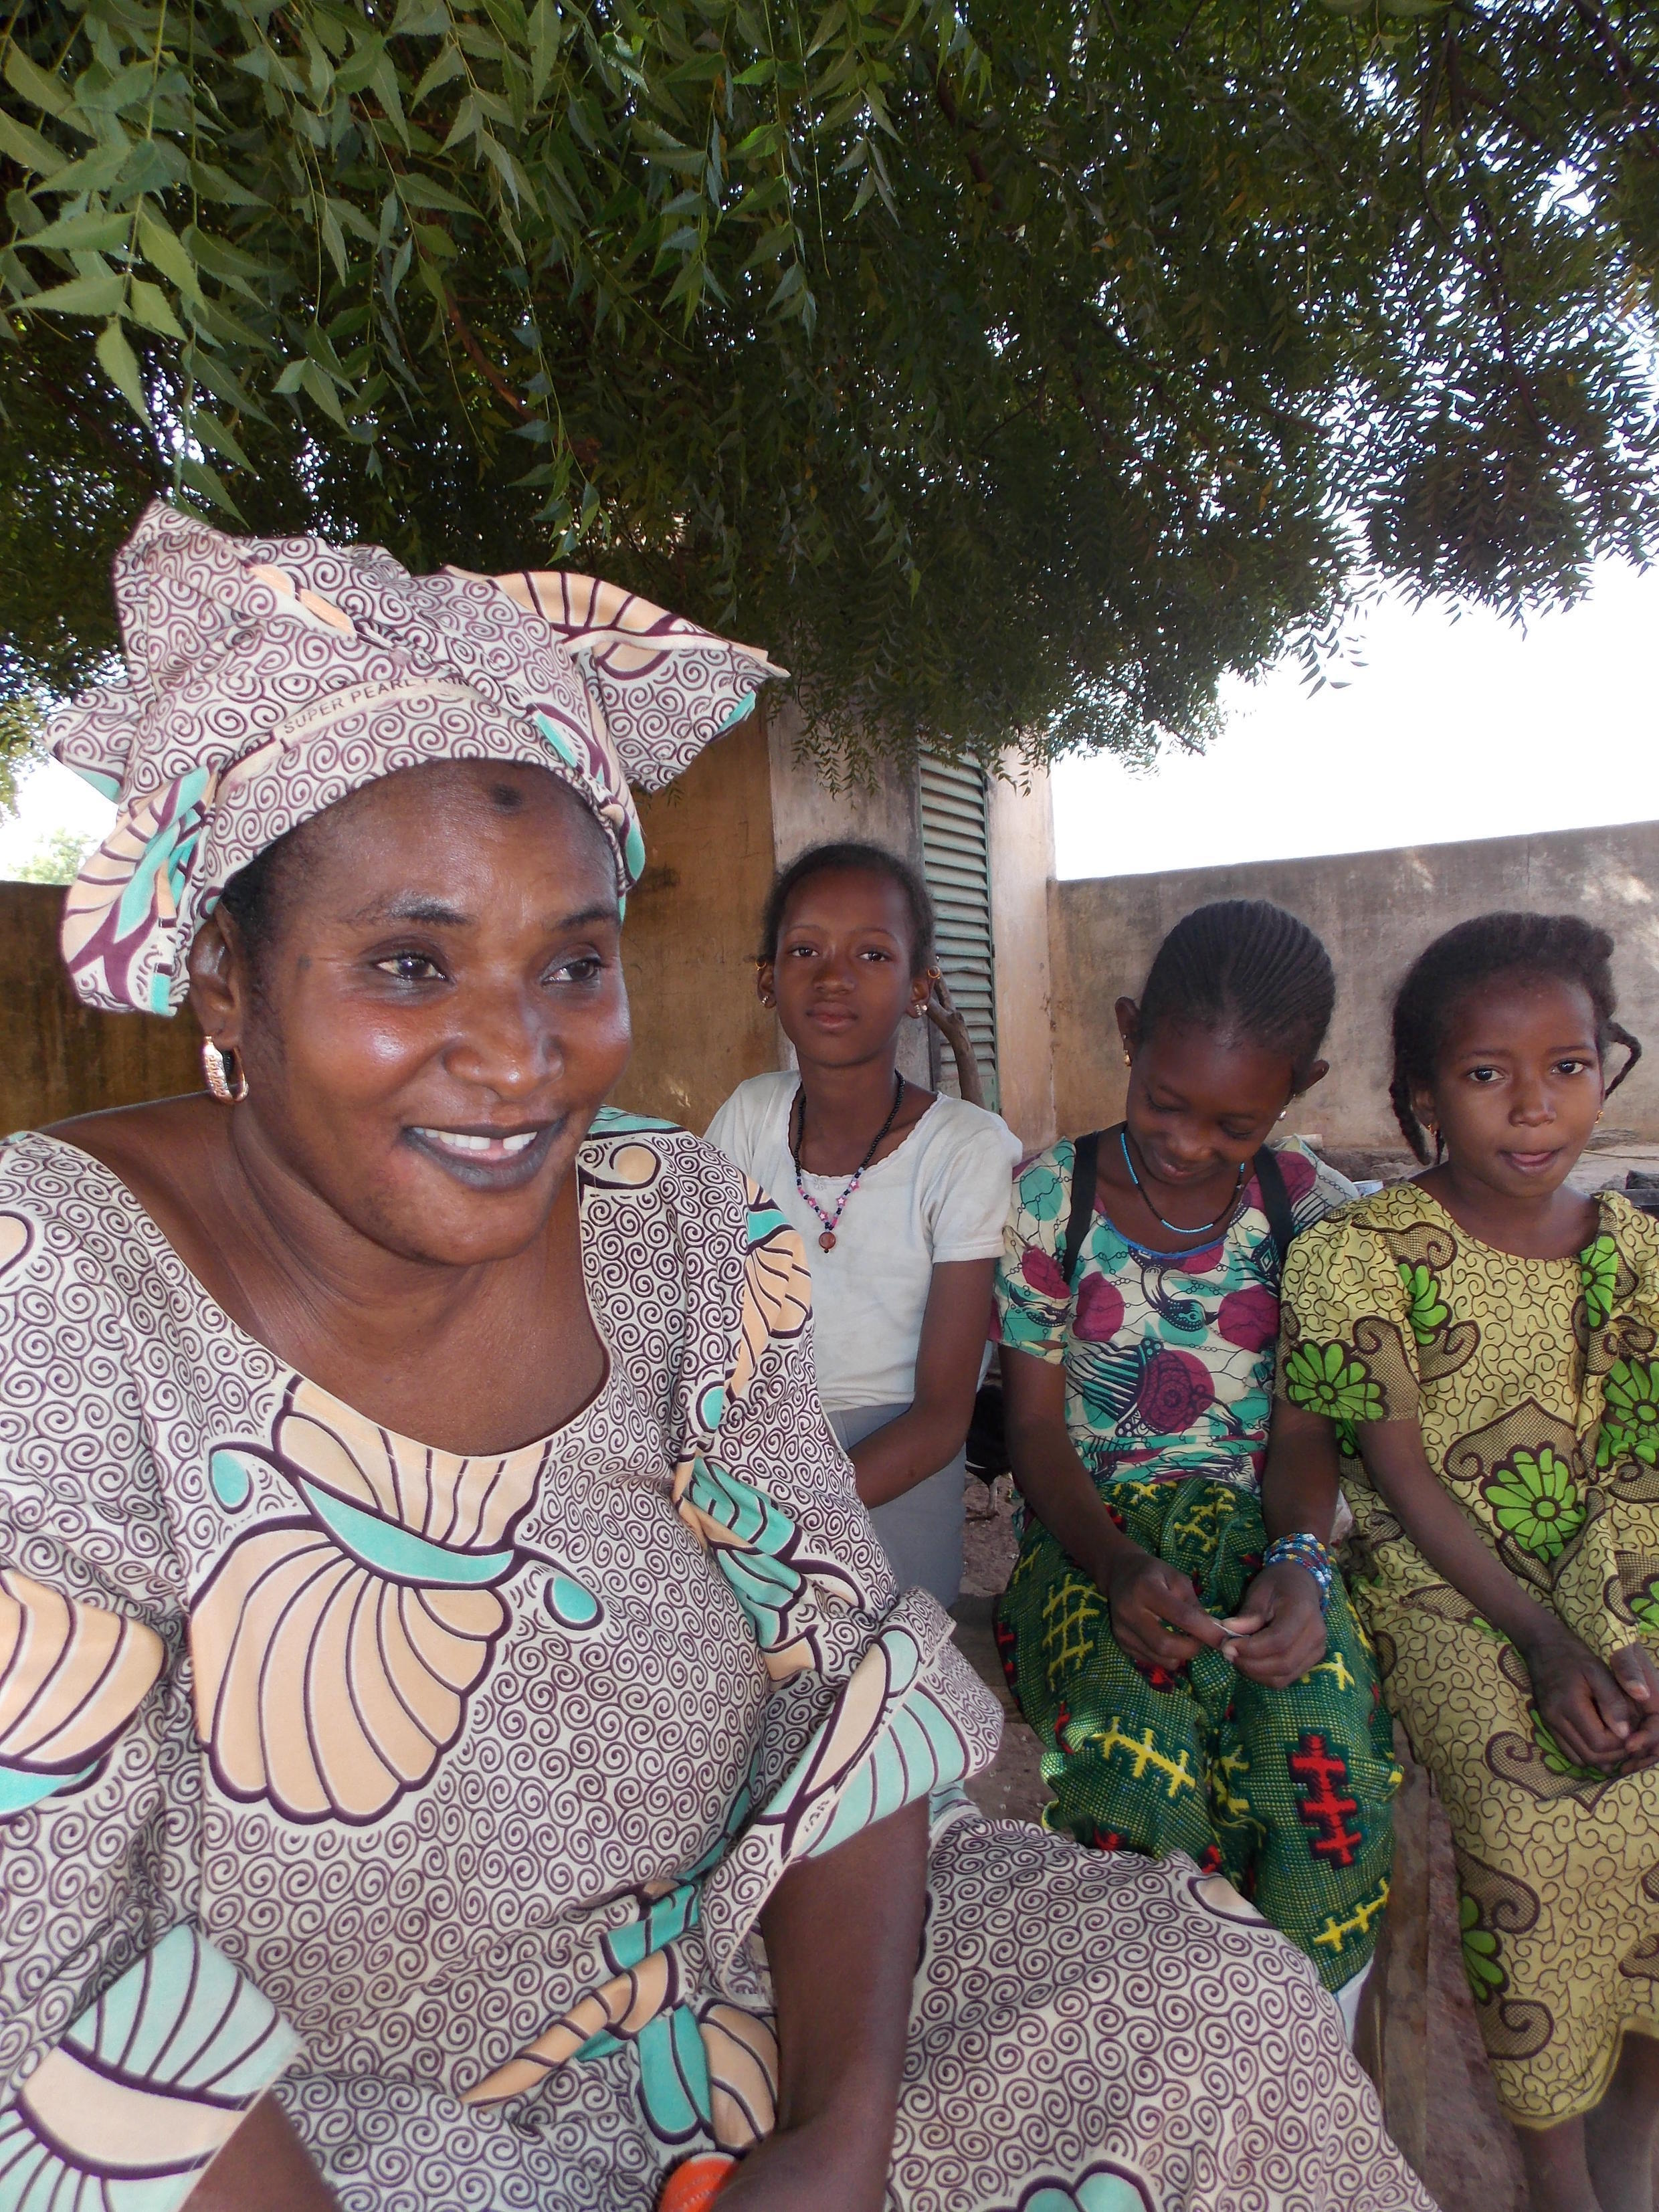 Former FGM practitionery Khaidy Saidy from Guinea Bissau